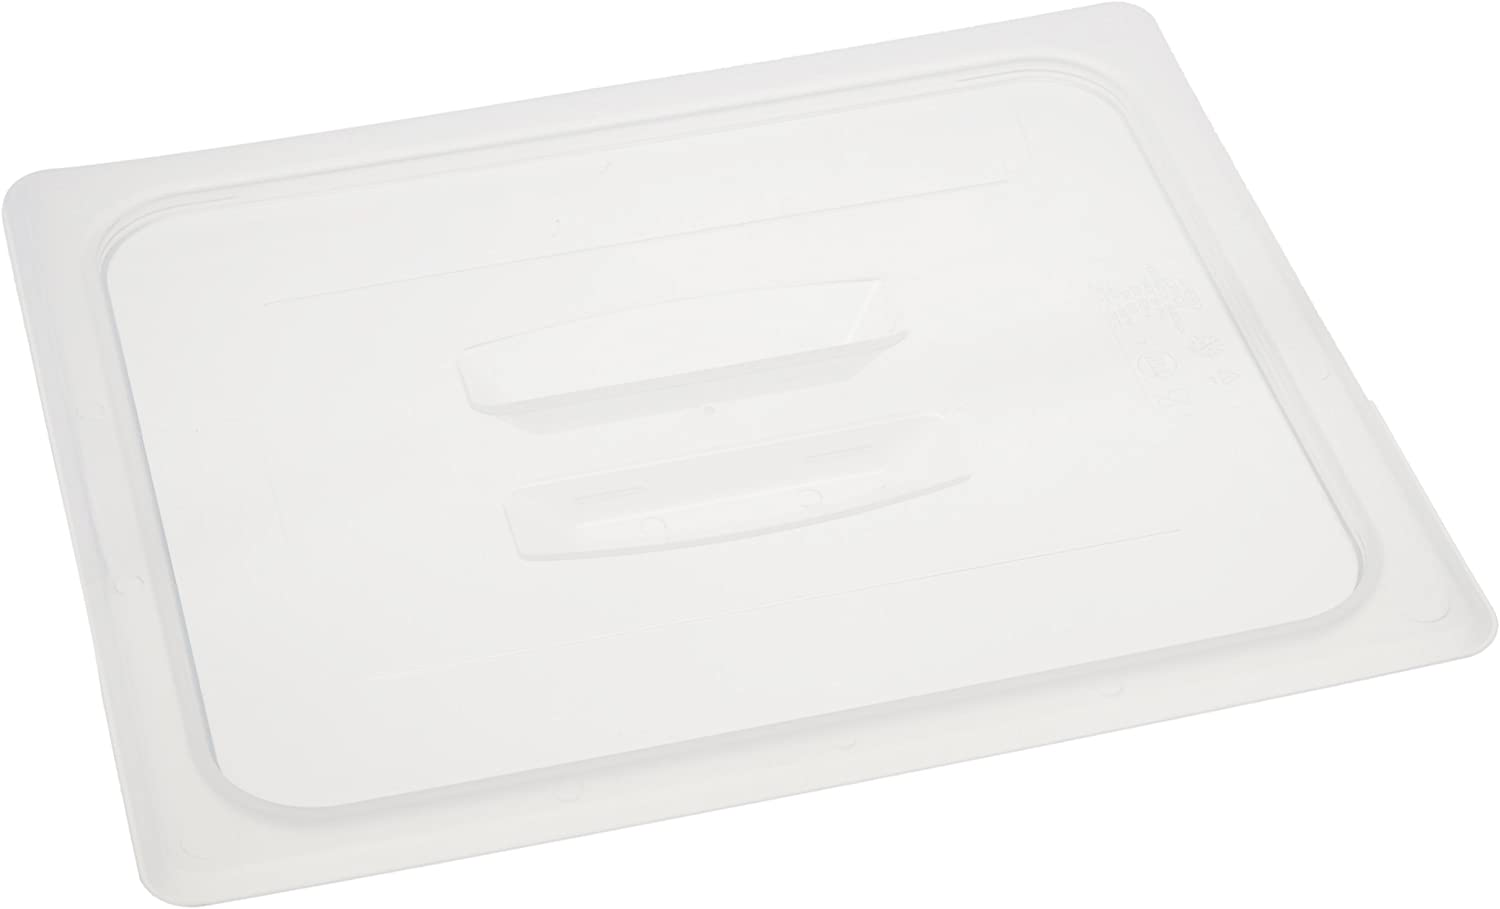 Cambro 20PPCH190 1/2 Size Food Pan Cover, Translucent